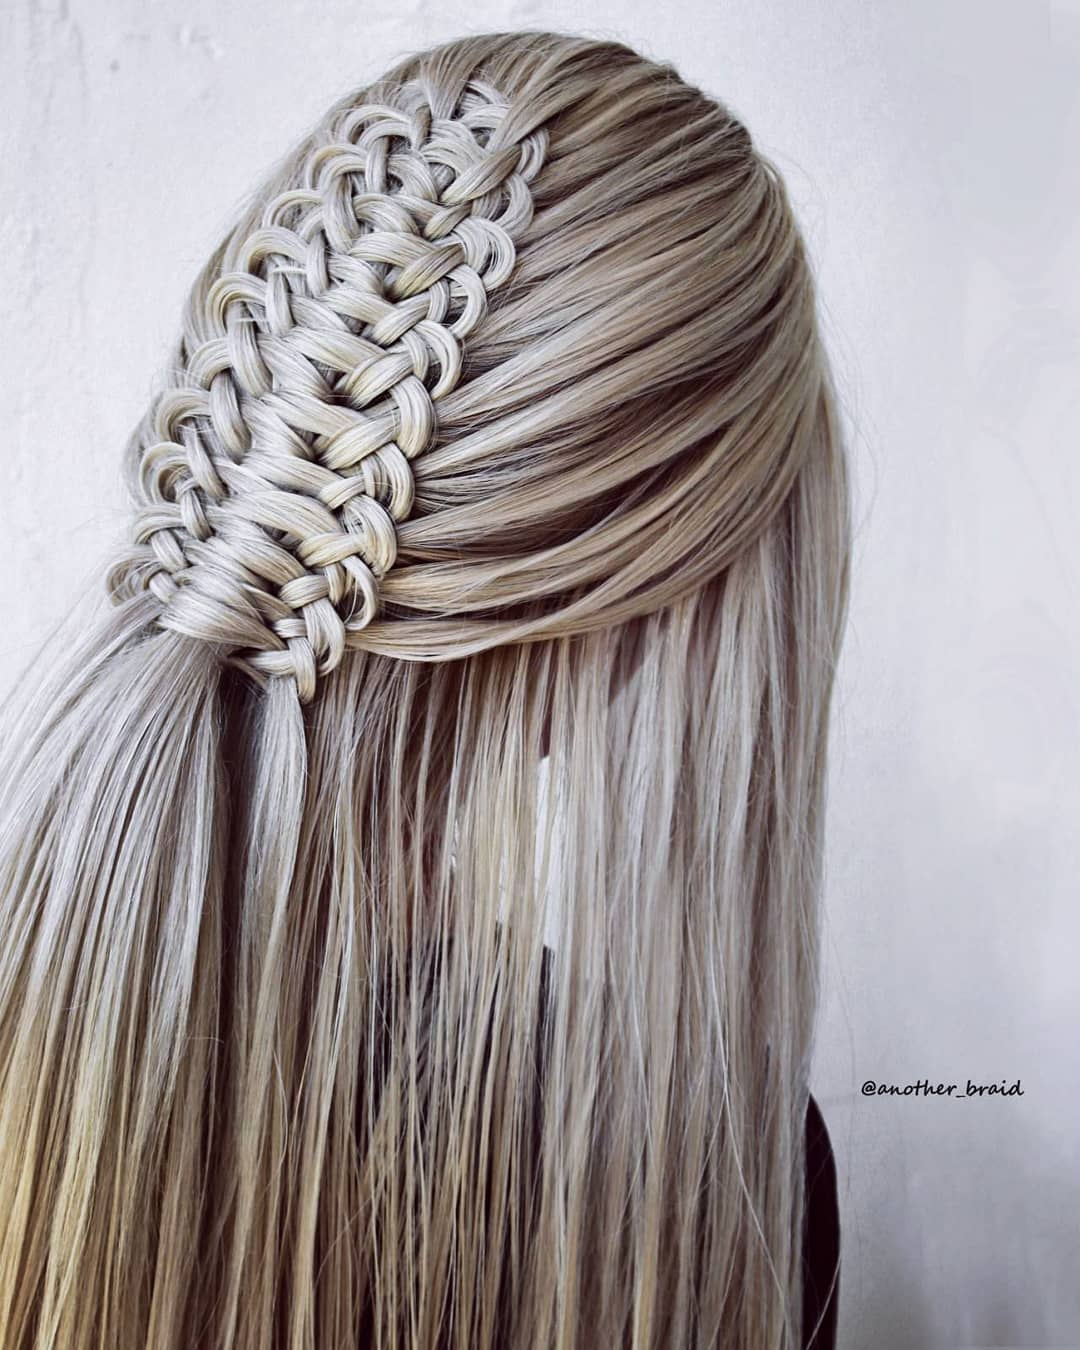 I Have Just Uploaded The Tutorial For Th Hairtutorial - Hair Video